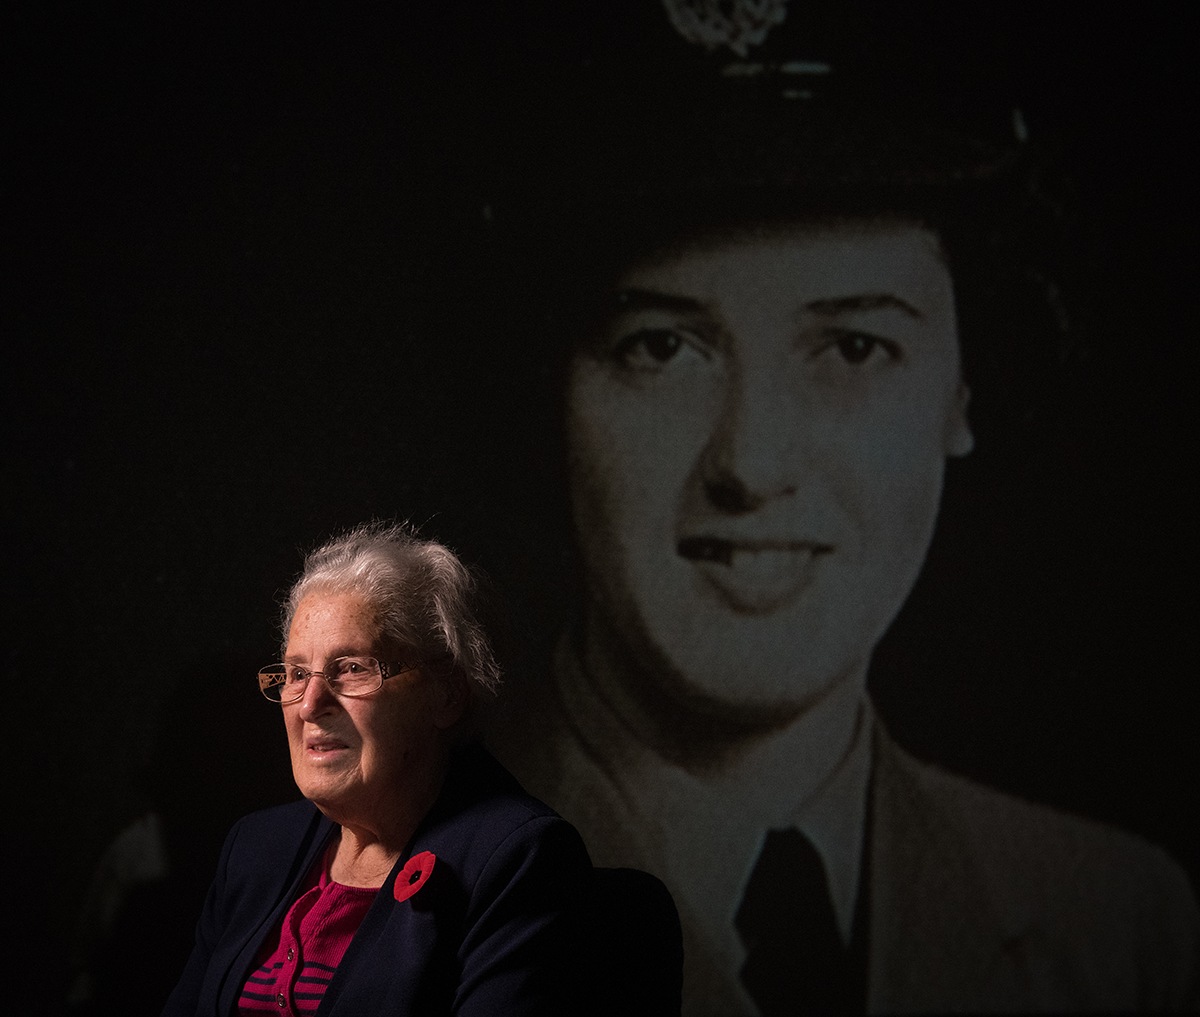 Isobel Montgomery, sits in front of a projected image of herself during the war times